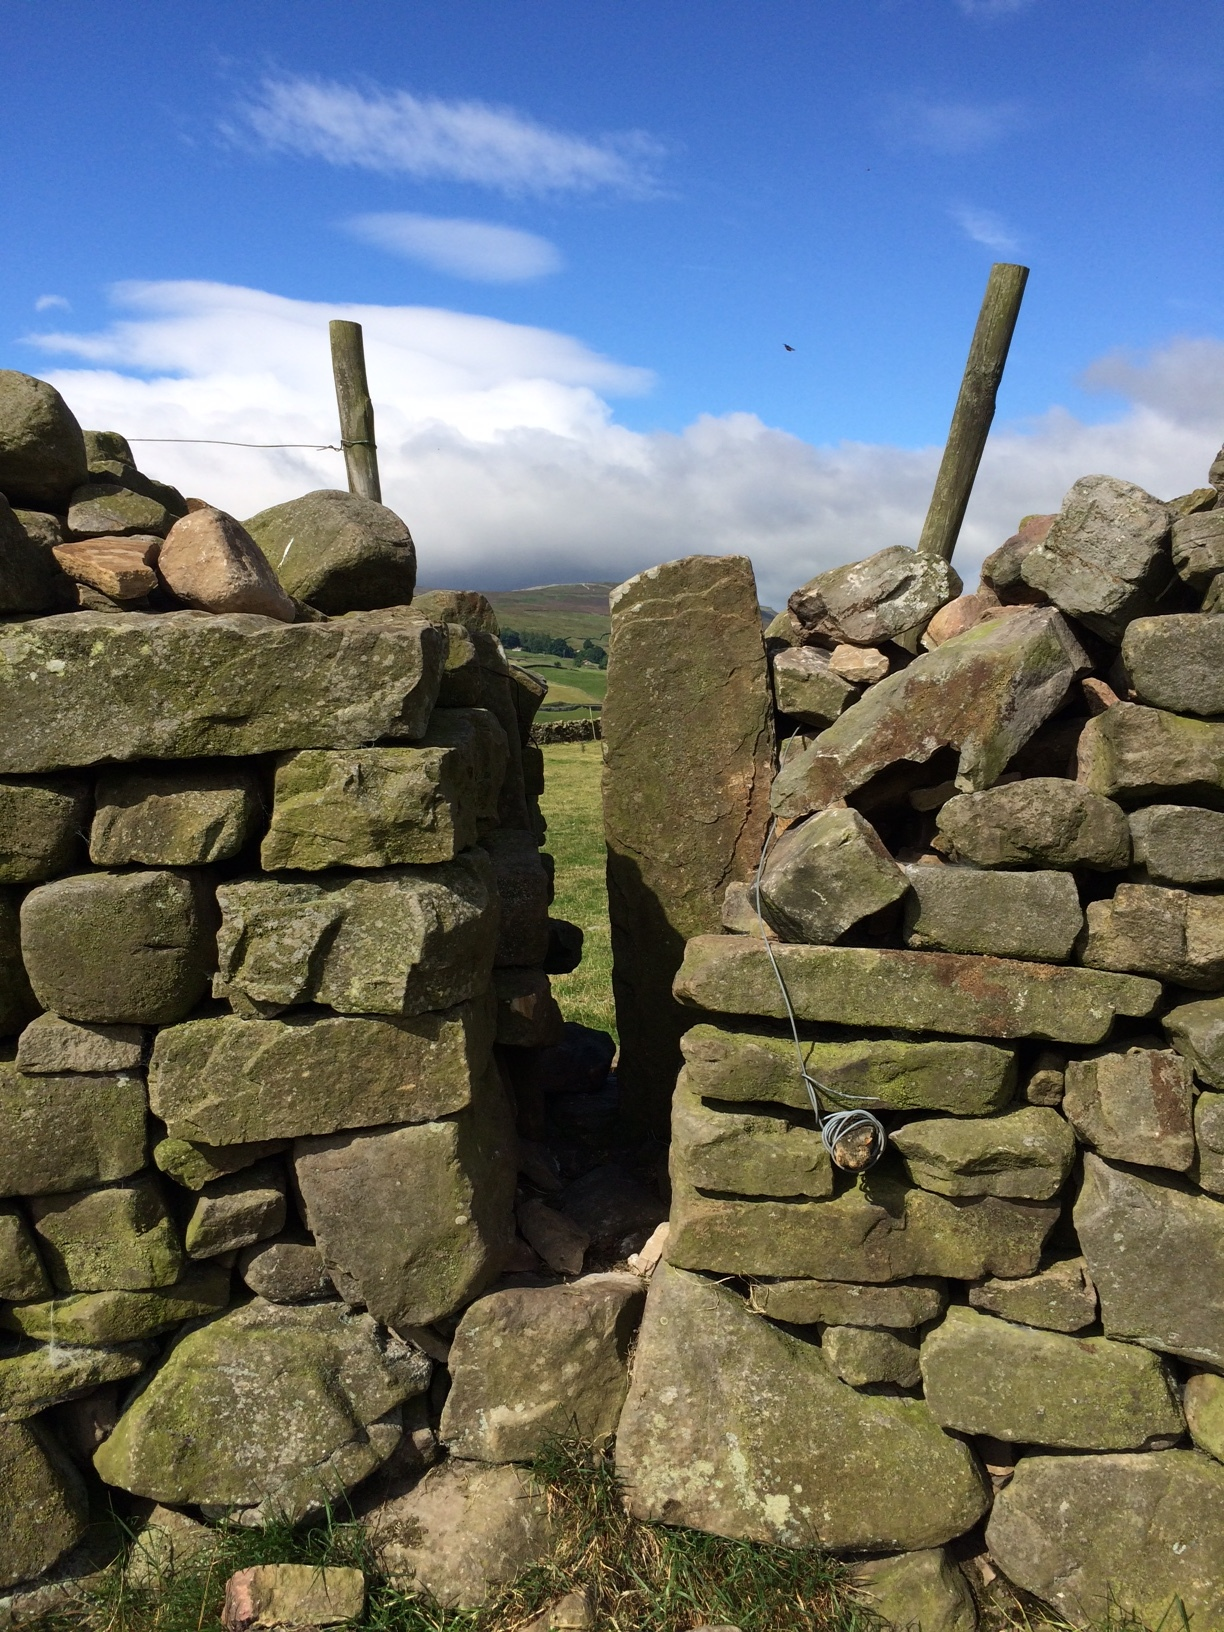 A simple stile (breathe in and hoist that pack!)